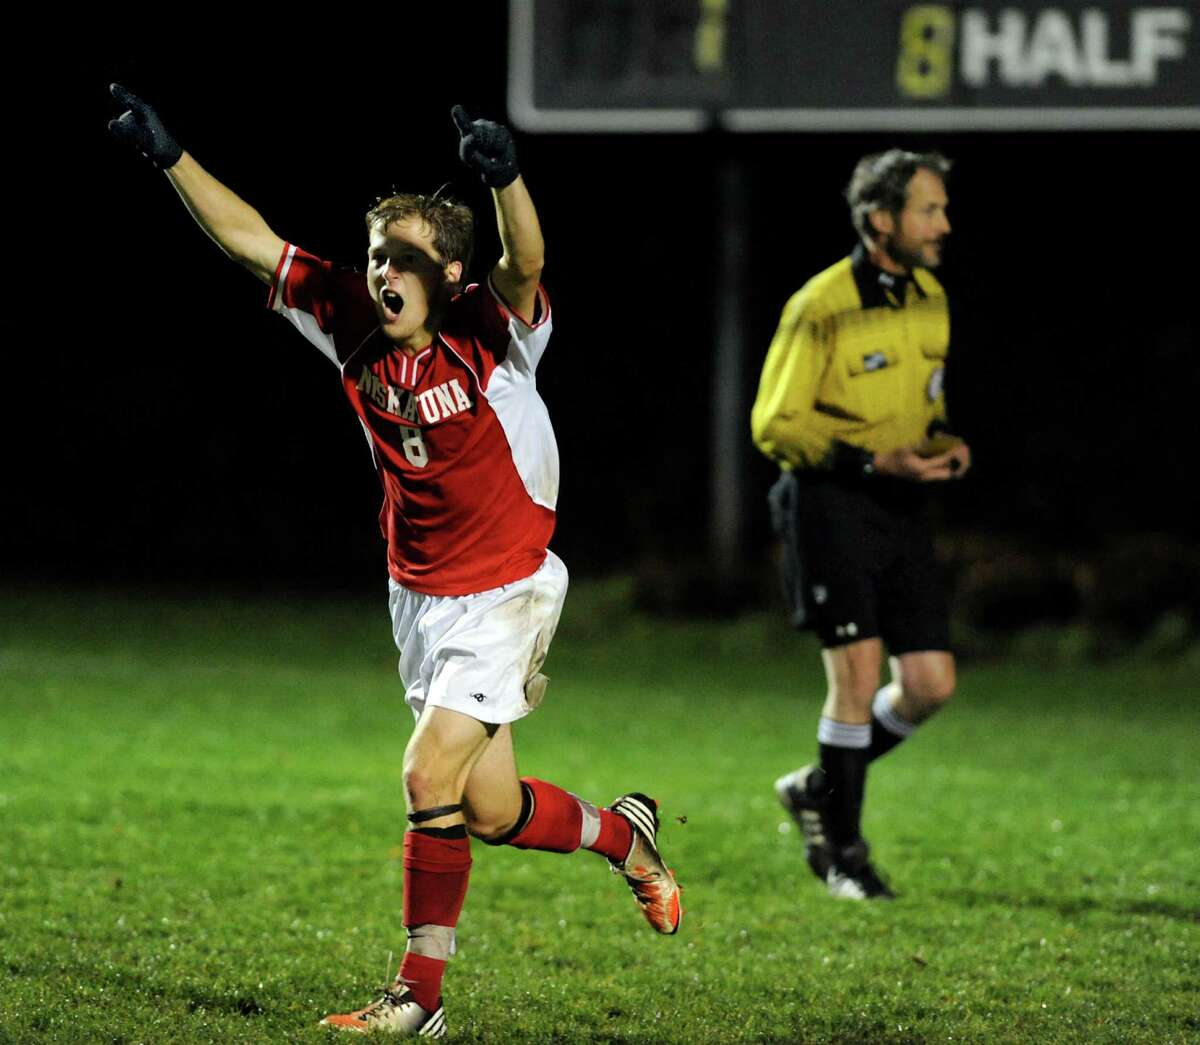 Niskayuna's Ian Cutting (8) celebrates scoring on the penalty kick during their Section II Class AA boys' soccer semifinals against Shenendehowa on Thursday, Nov. 1, 2012, at Colonie High in Colonie, N.Y. (Cindy Schultz / Times Union)